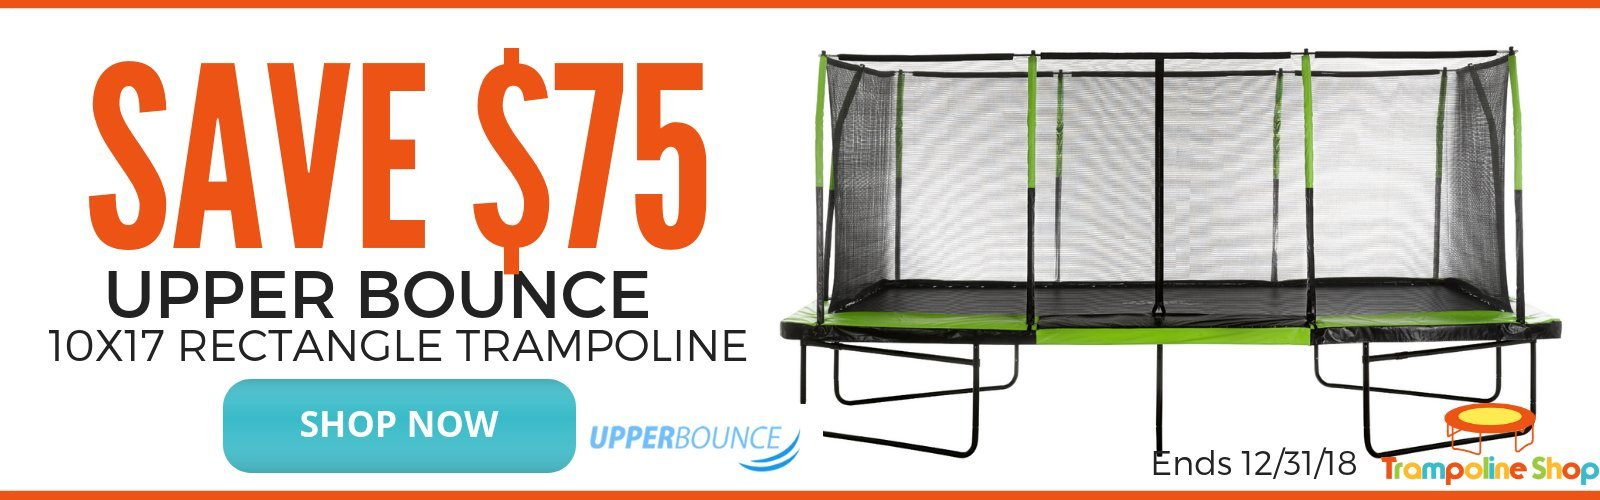 UPPER BOUNCE PROMOTIONS | THE TRAMPOLINE SHOP